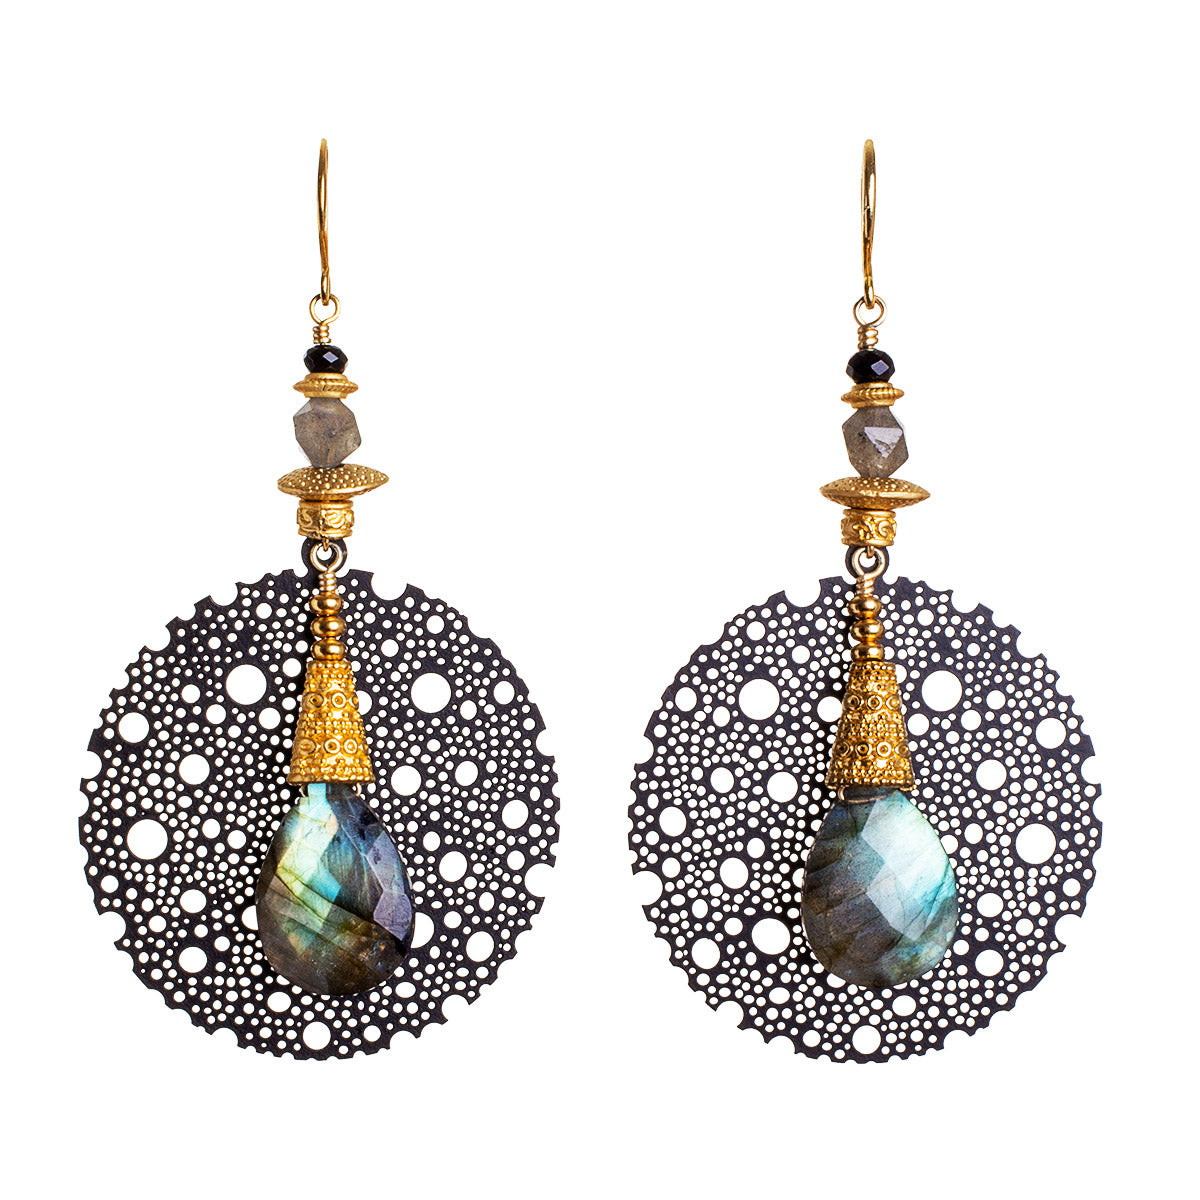 N°674 The Midnight Labradorite Spell Statement Earrings